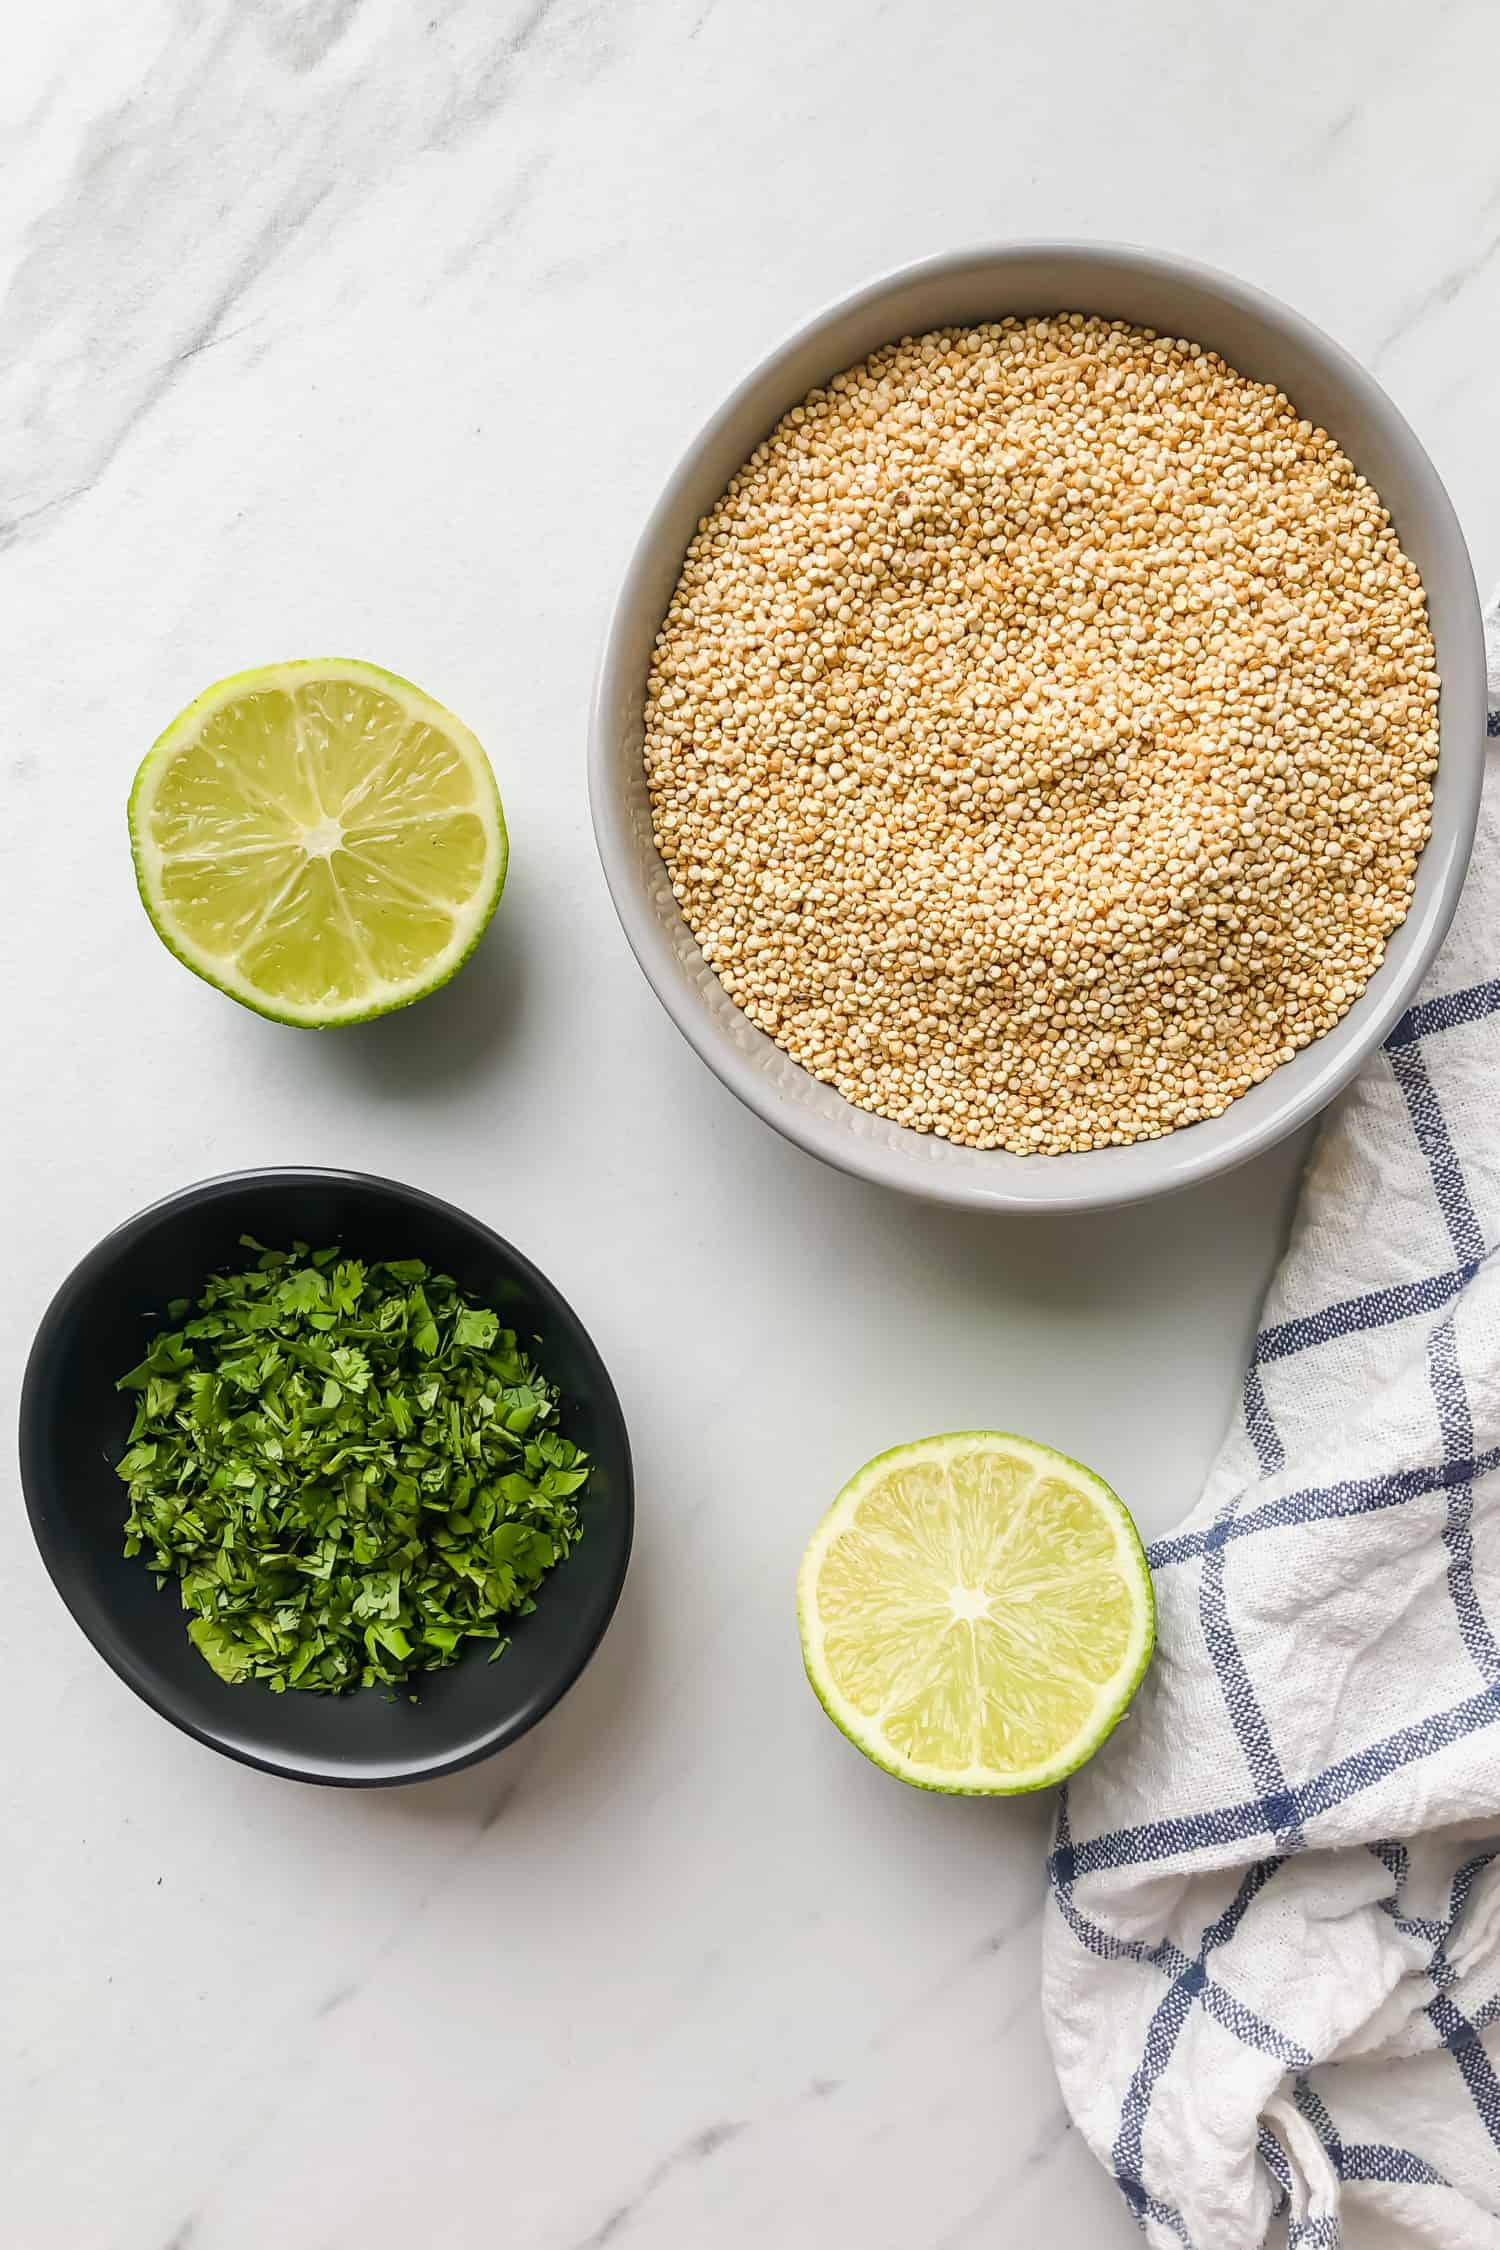 ingredients for cilantro lime quinoa in bowls: cilantro, limes, quinoa